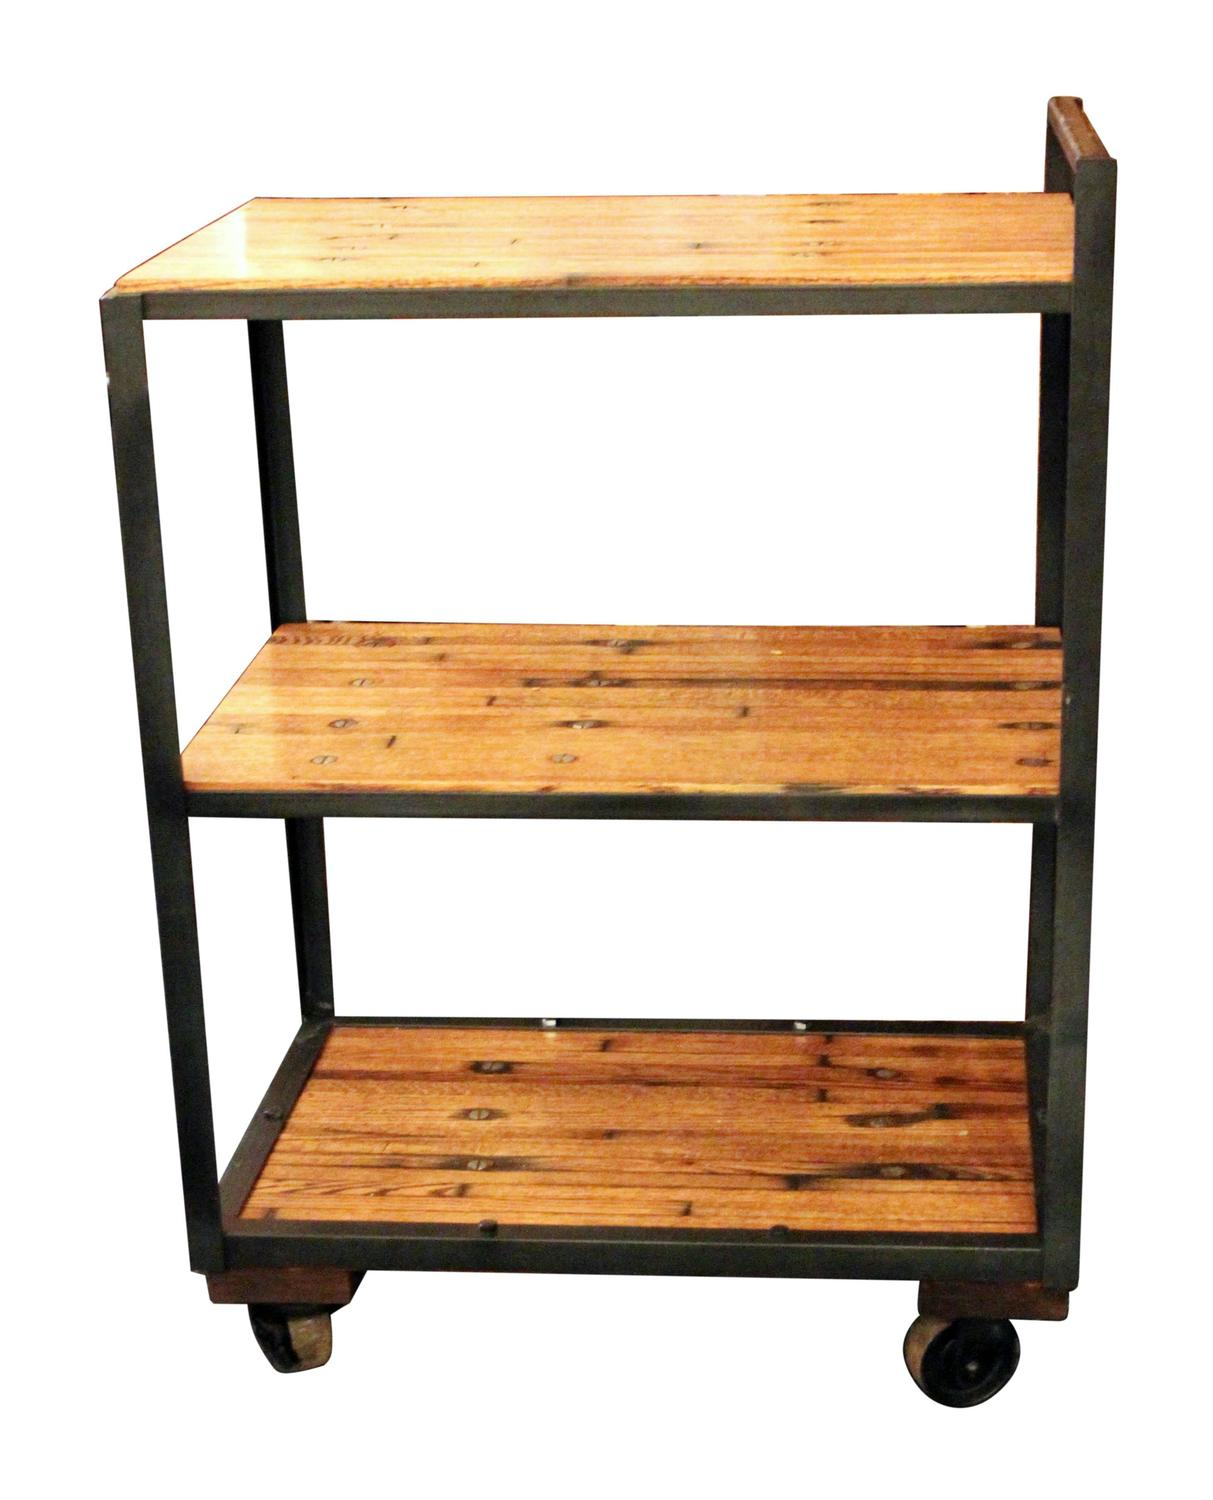 Very Impressive portraiture of  with Salvaged Wood Flooring Shelves and Casters For Sale at 1stdibs with #BD740E color and 1213x1500 pixels